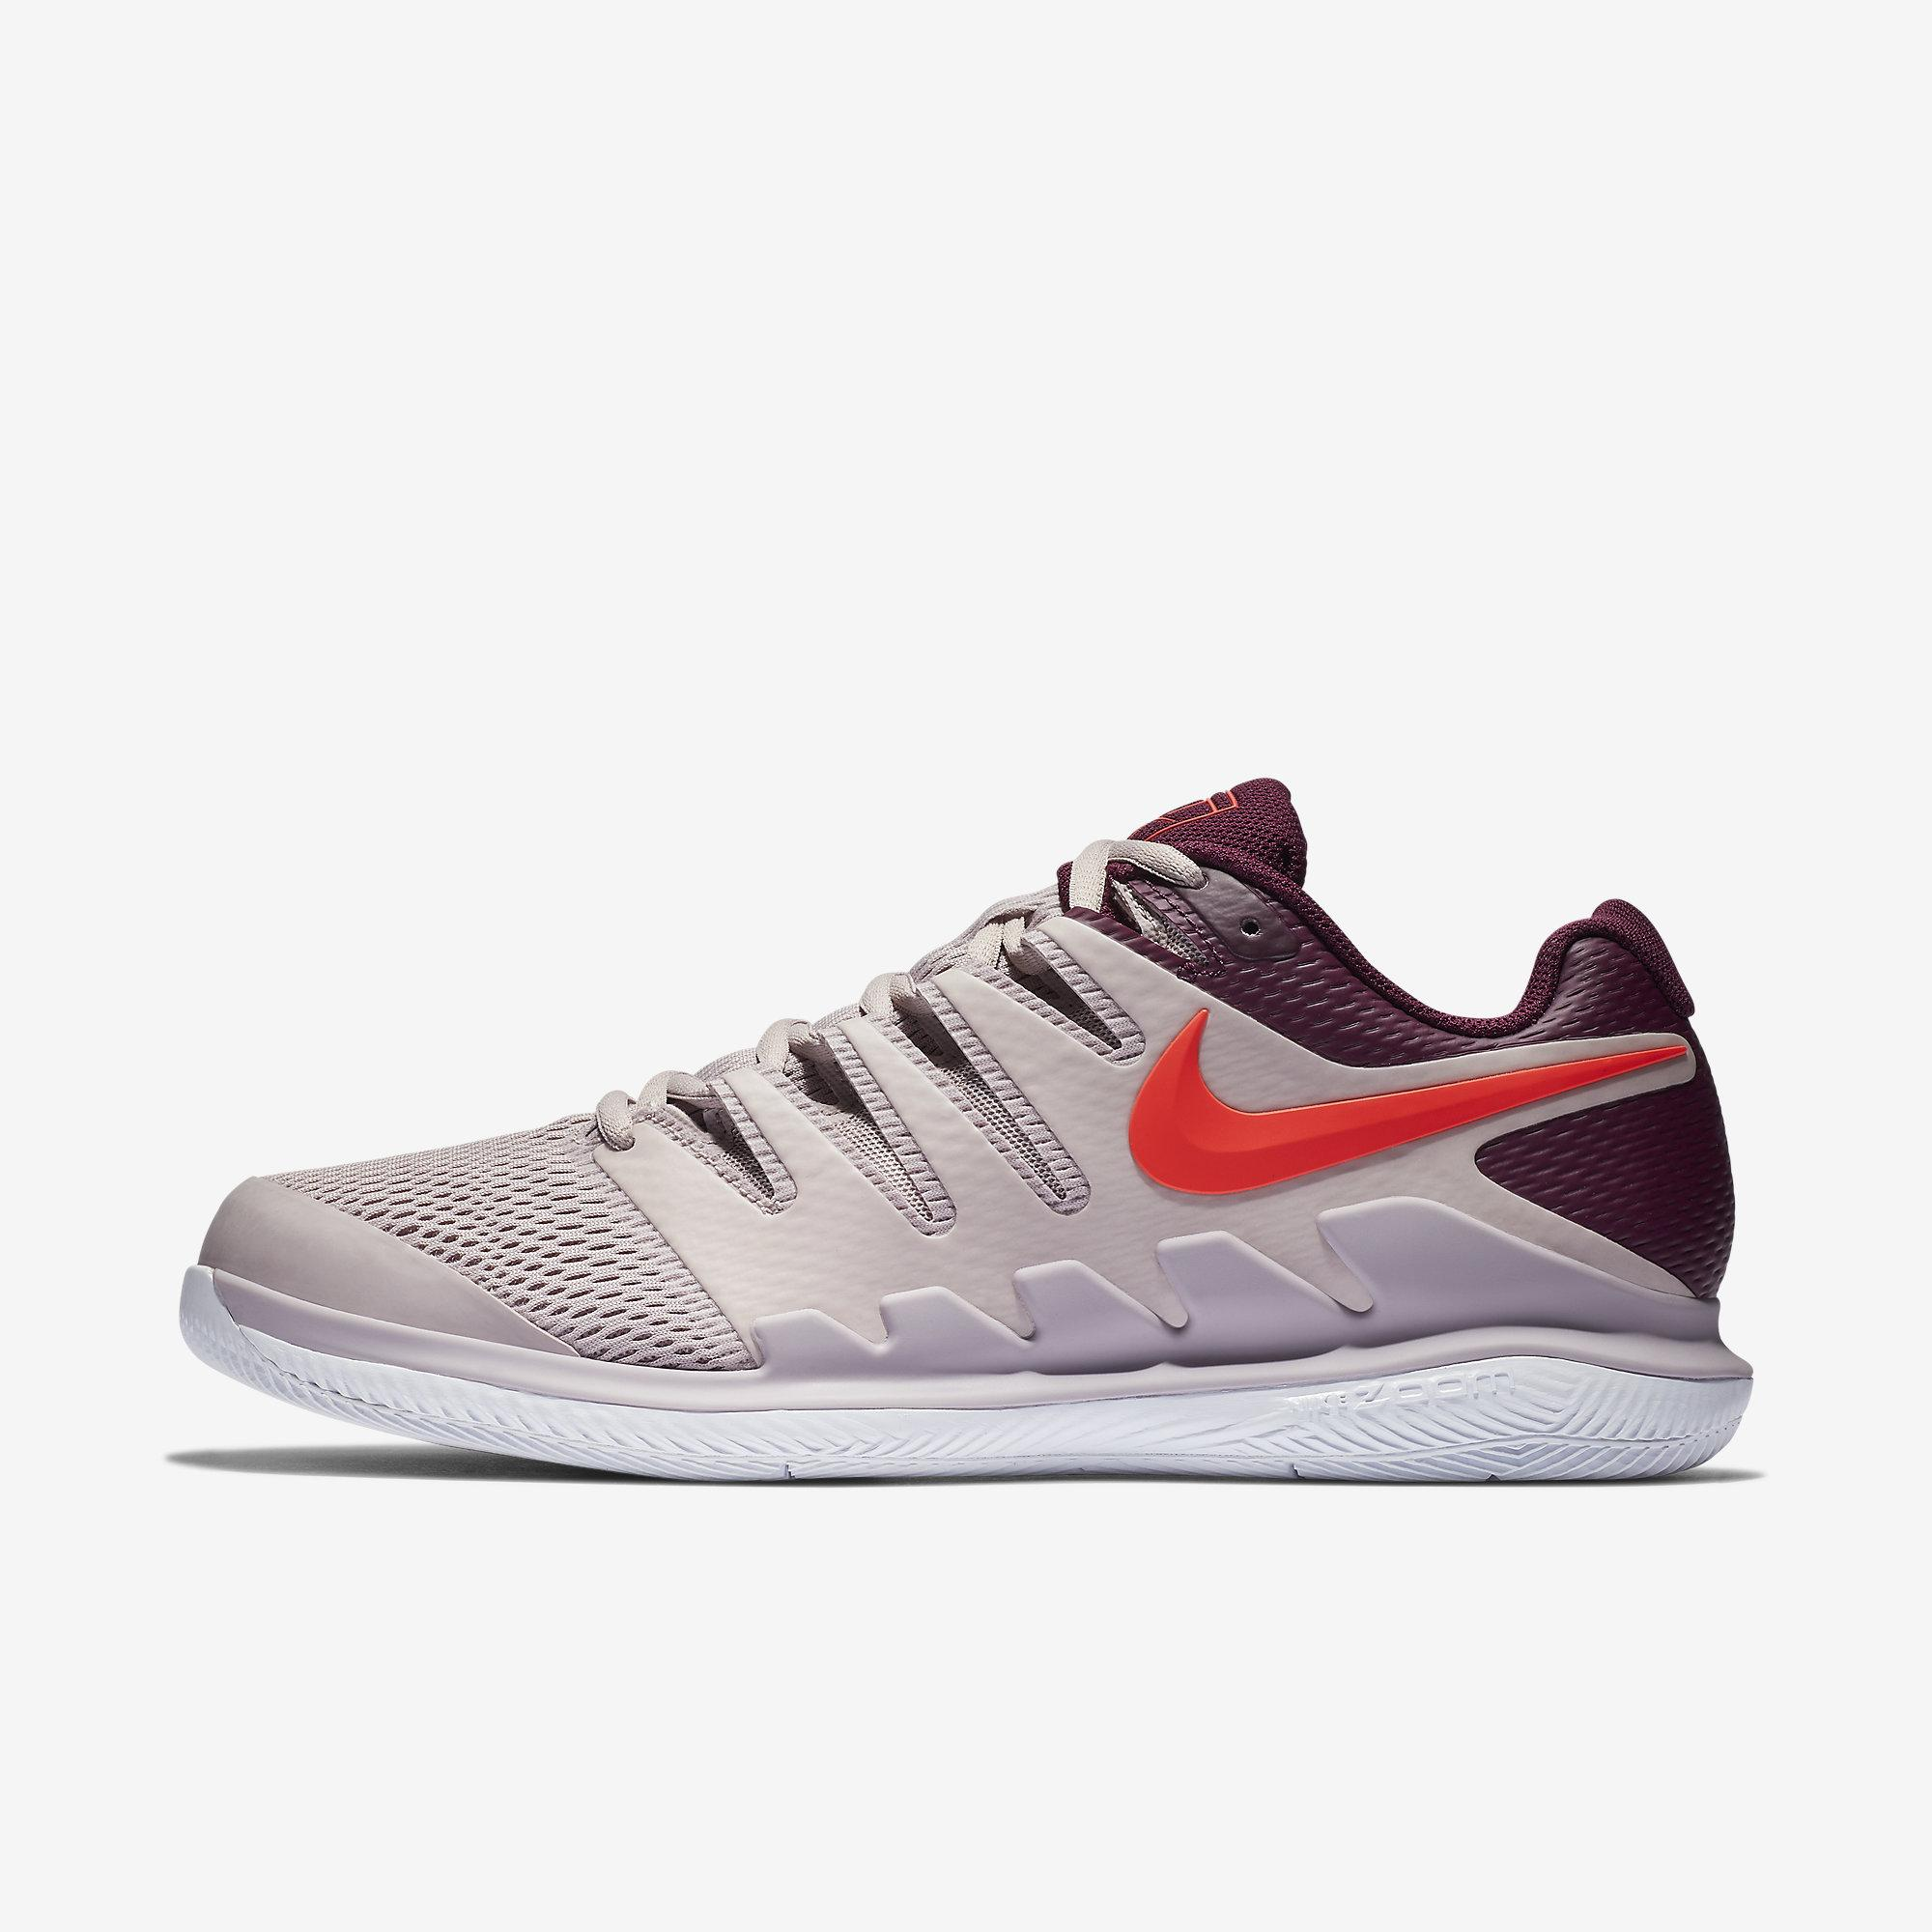 f05919a4fa Nike Mens Air Zoom Vapor X Tennis Shoes - Bright Crimson Bordeaux  Black Particle Rose - Tennisnuts.com